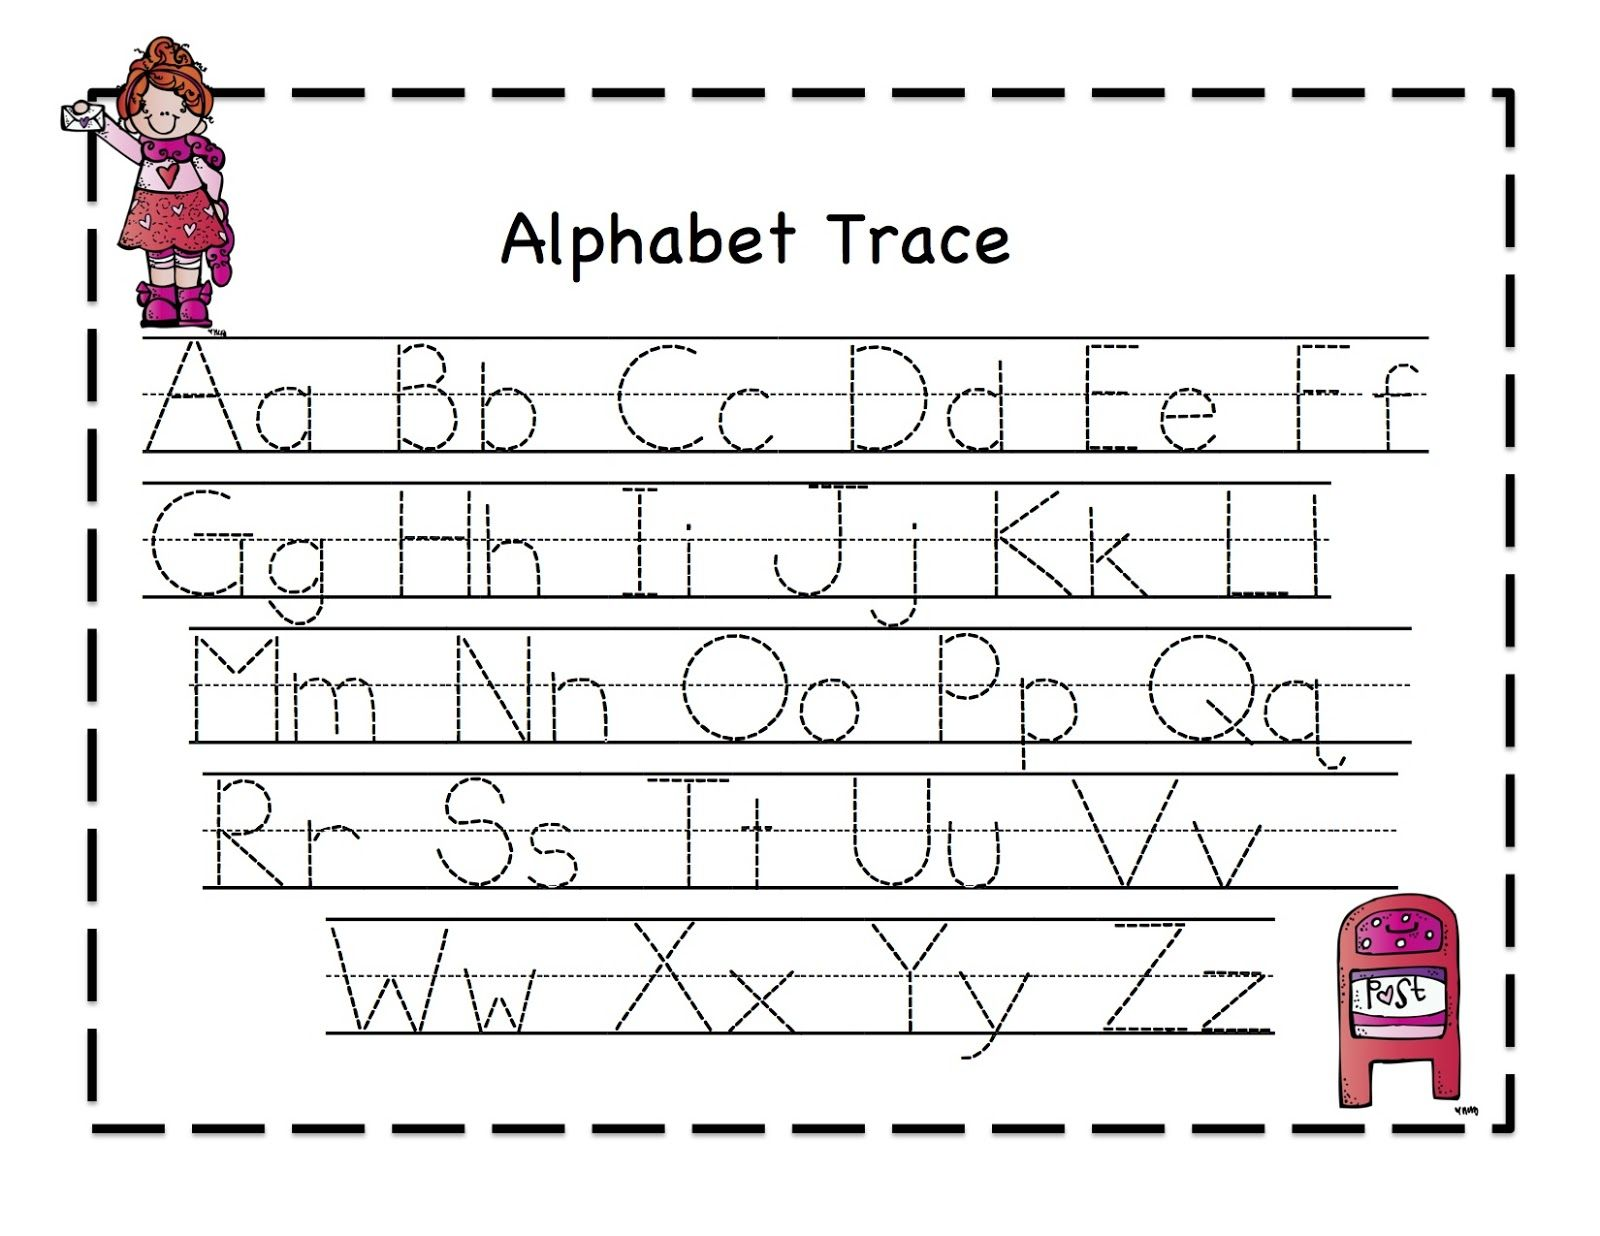 Worksheets Abc Tracing Worksheets For Kindergarten abc tracing sheets for preschool kids kiddo shelter alphabet and extent fun learning with worksheets loving printable smart eworksheet